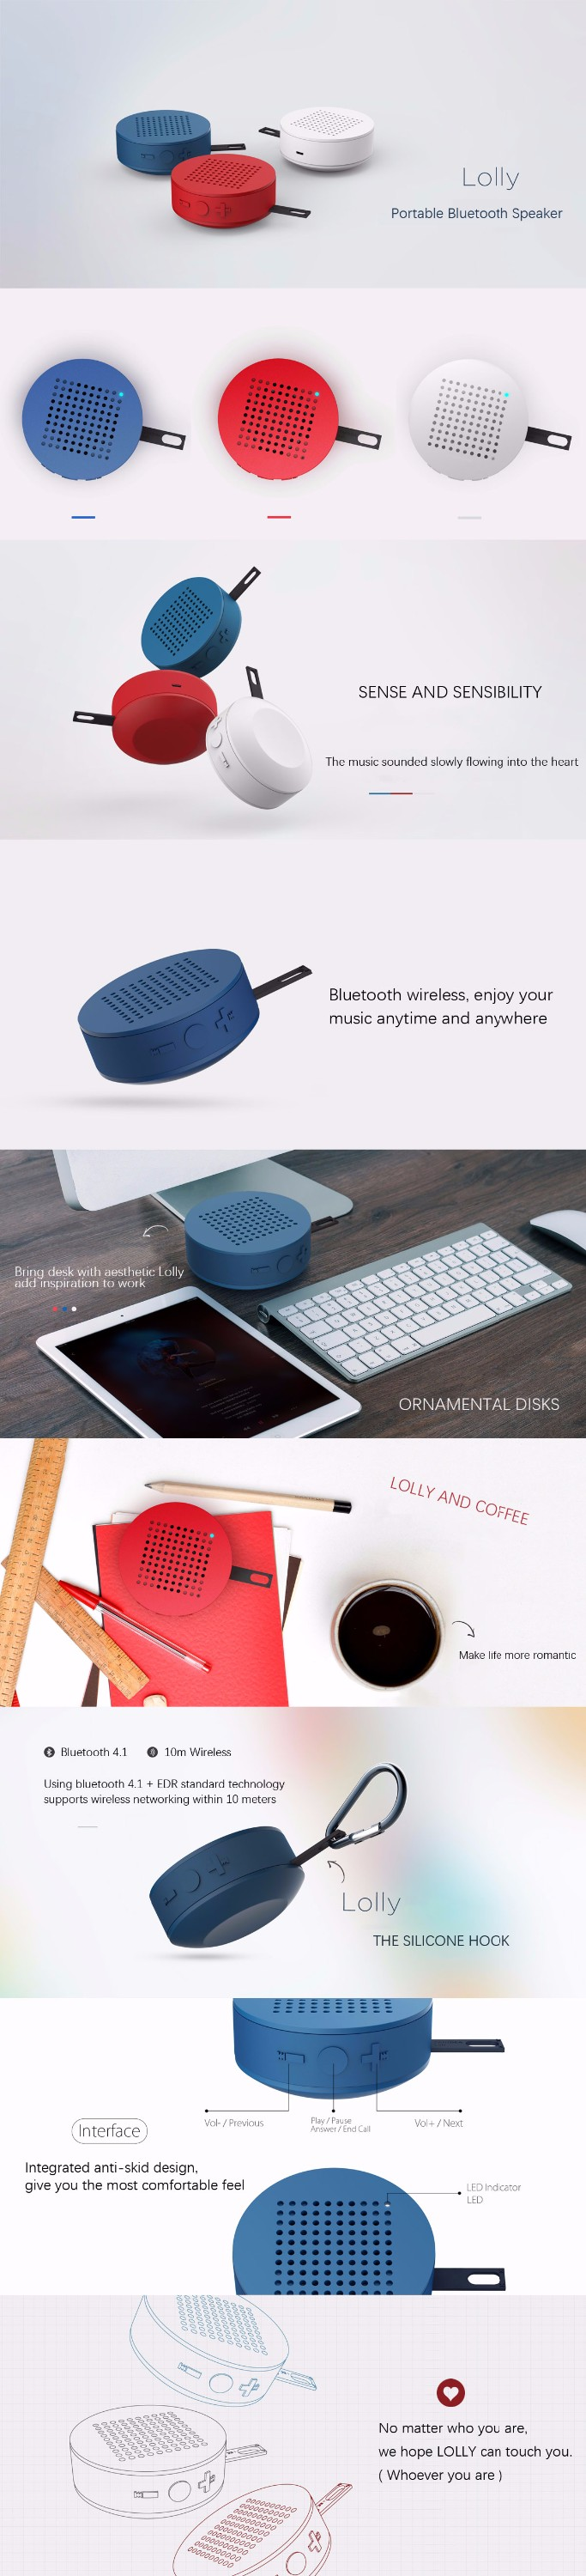 coolest best and loudest portable speakers for iphone